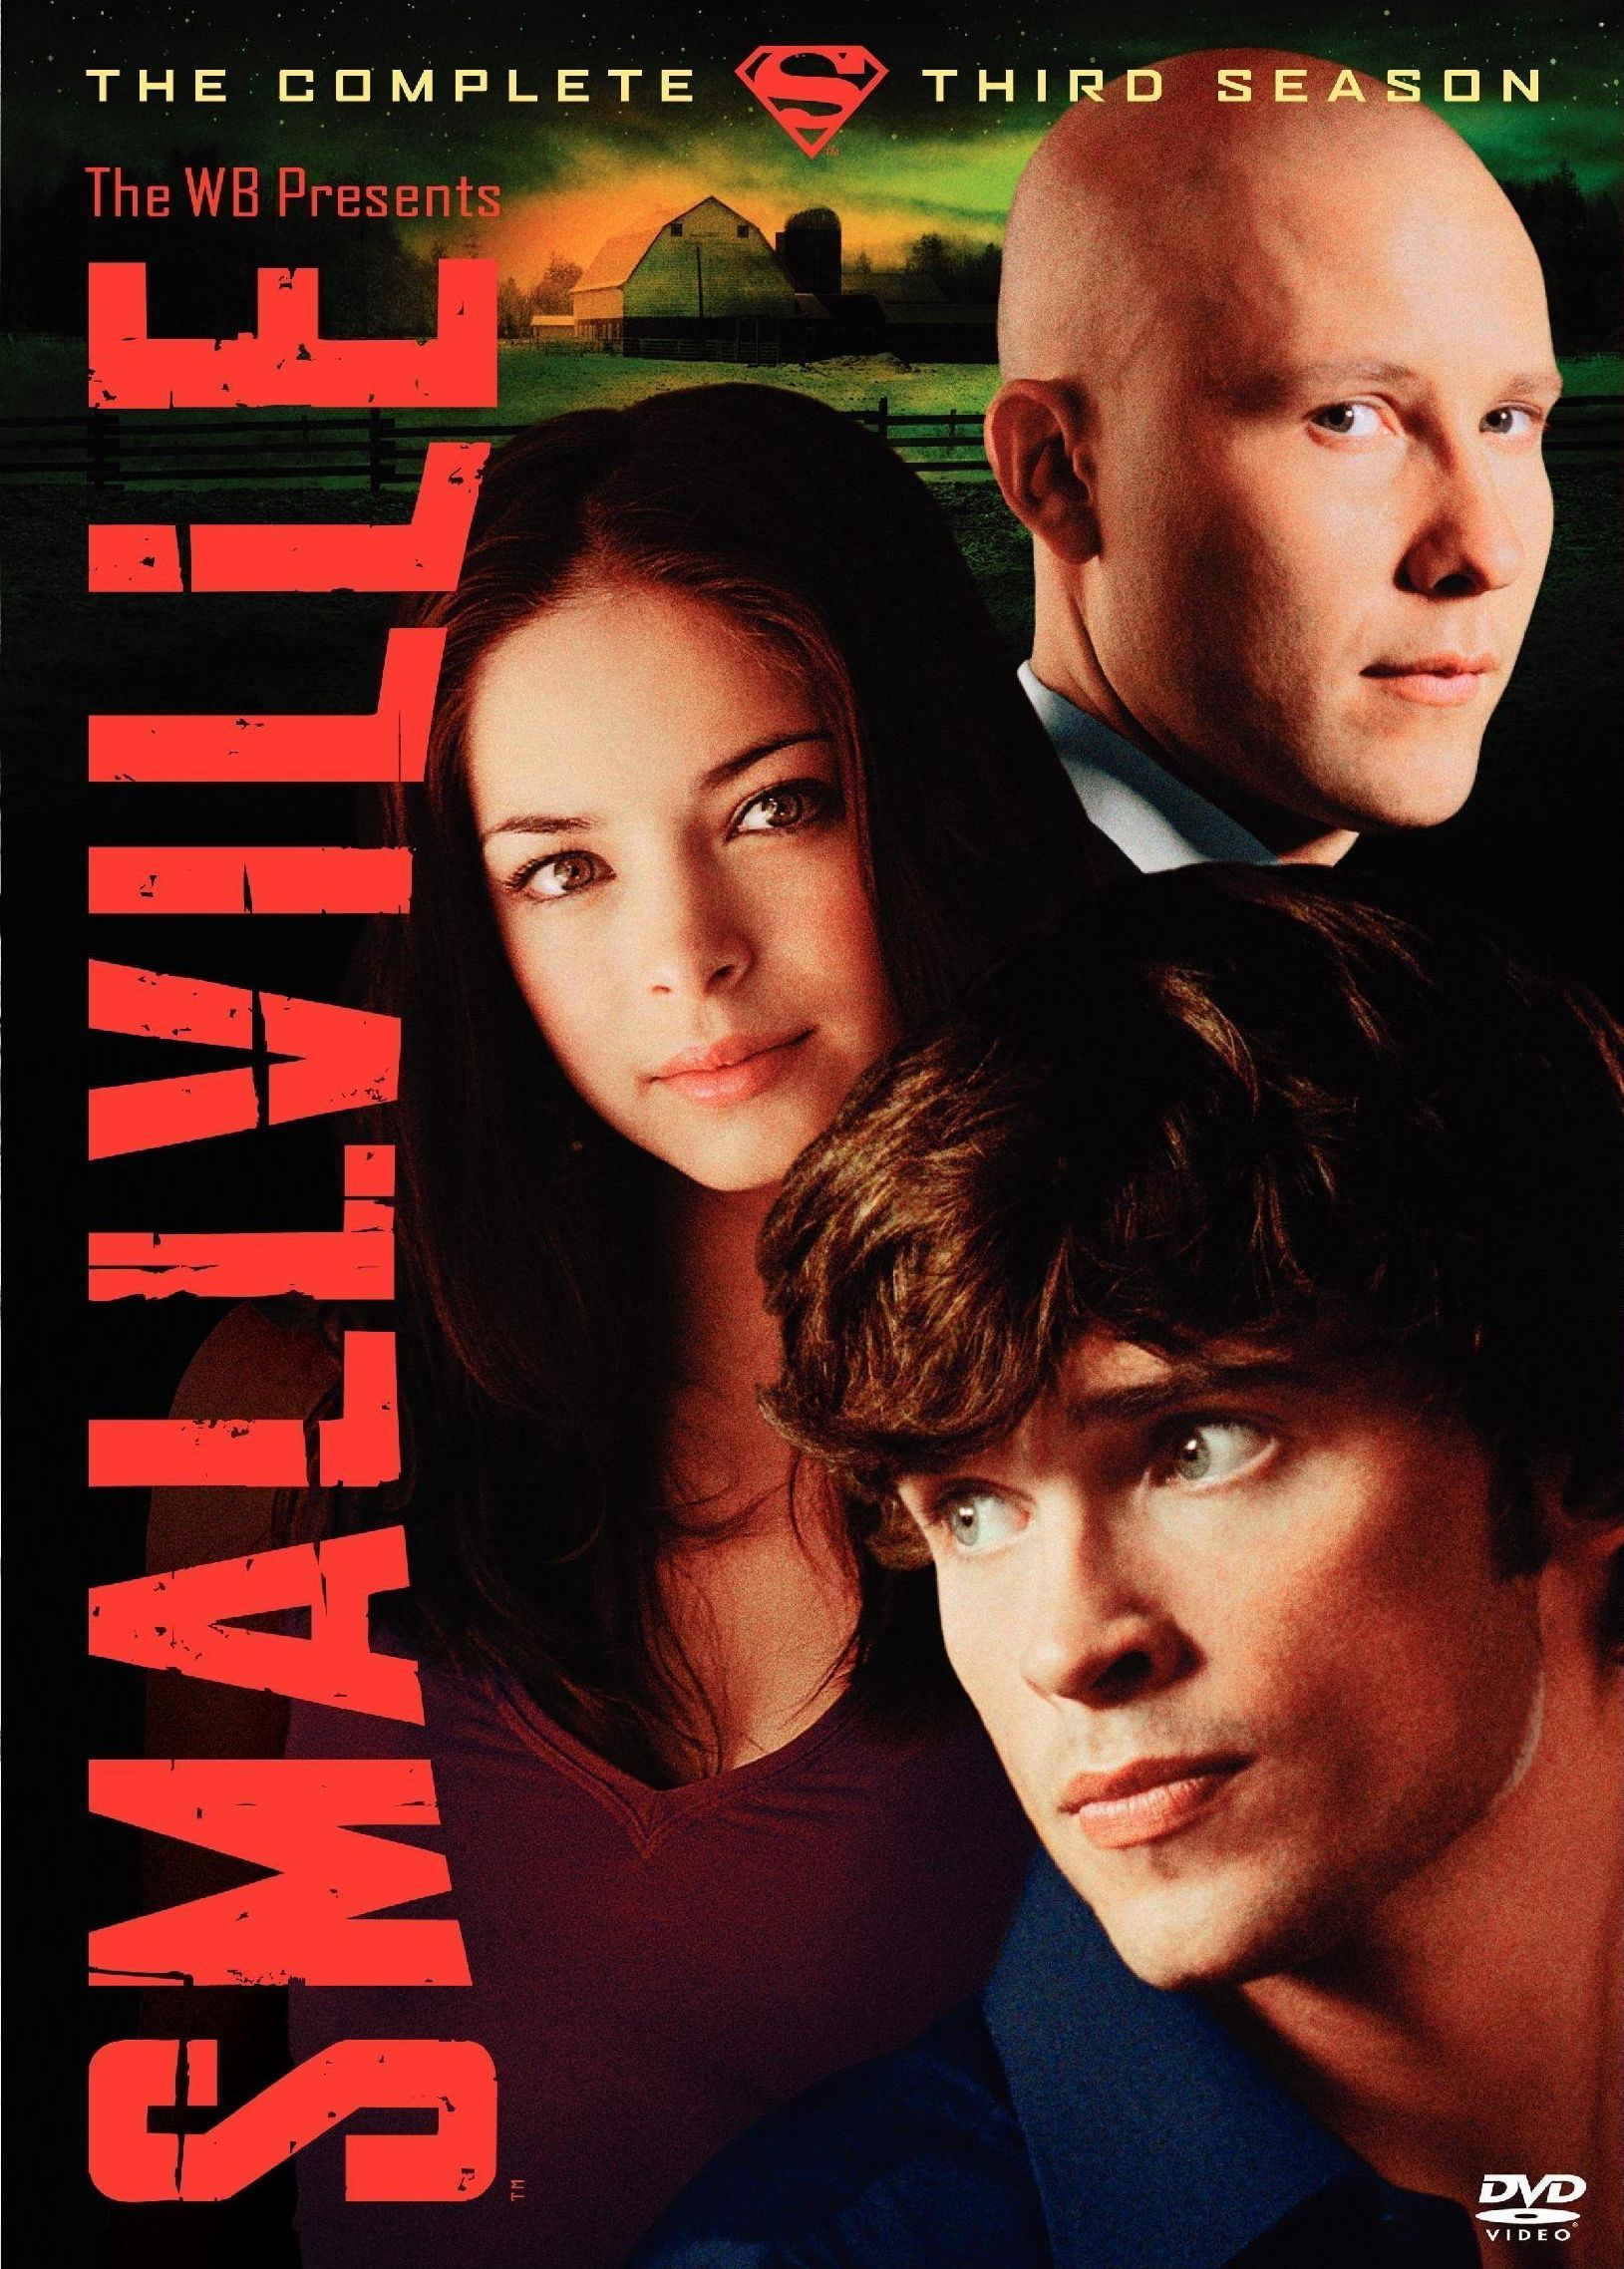 smallville dublado 5 temporada rmvb